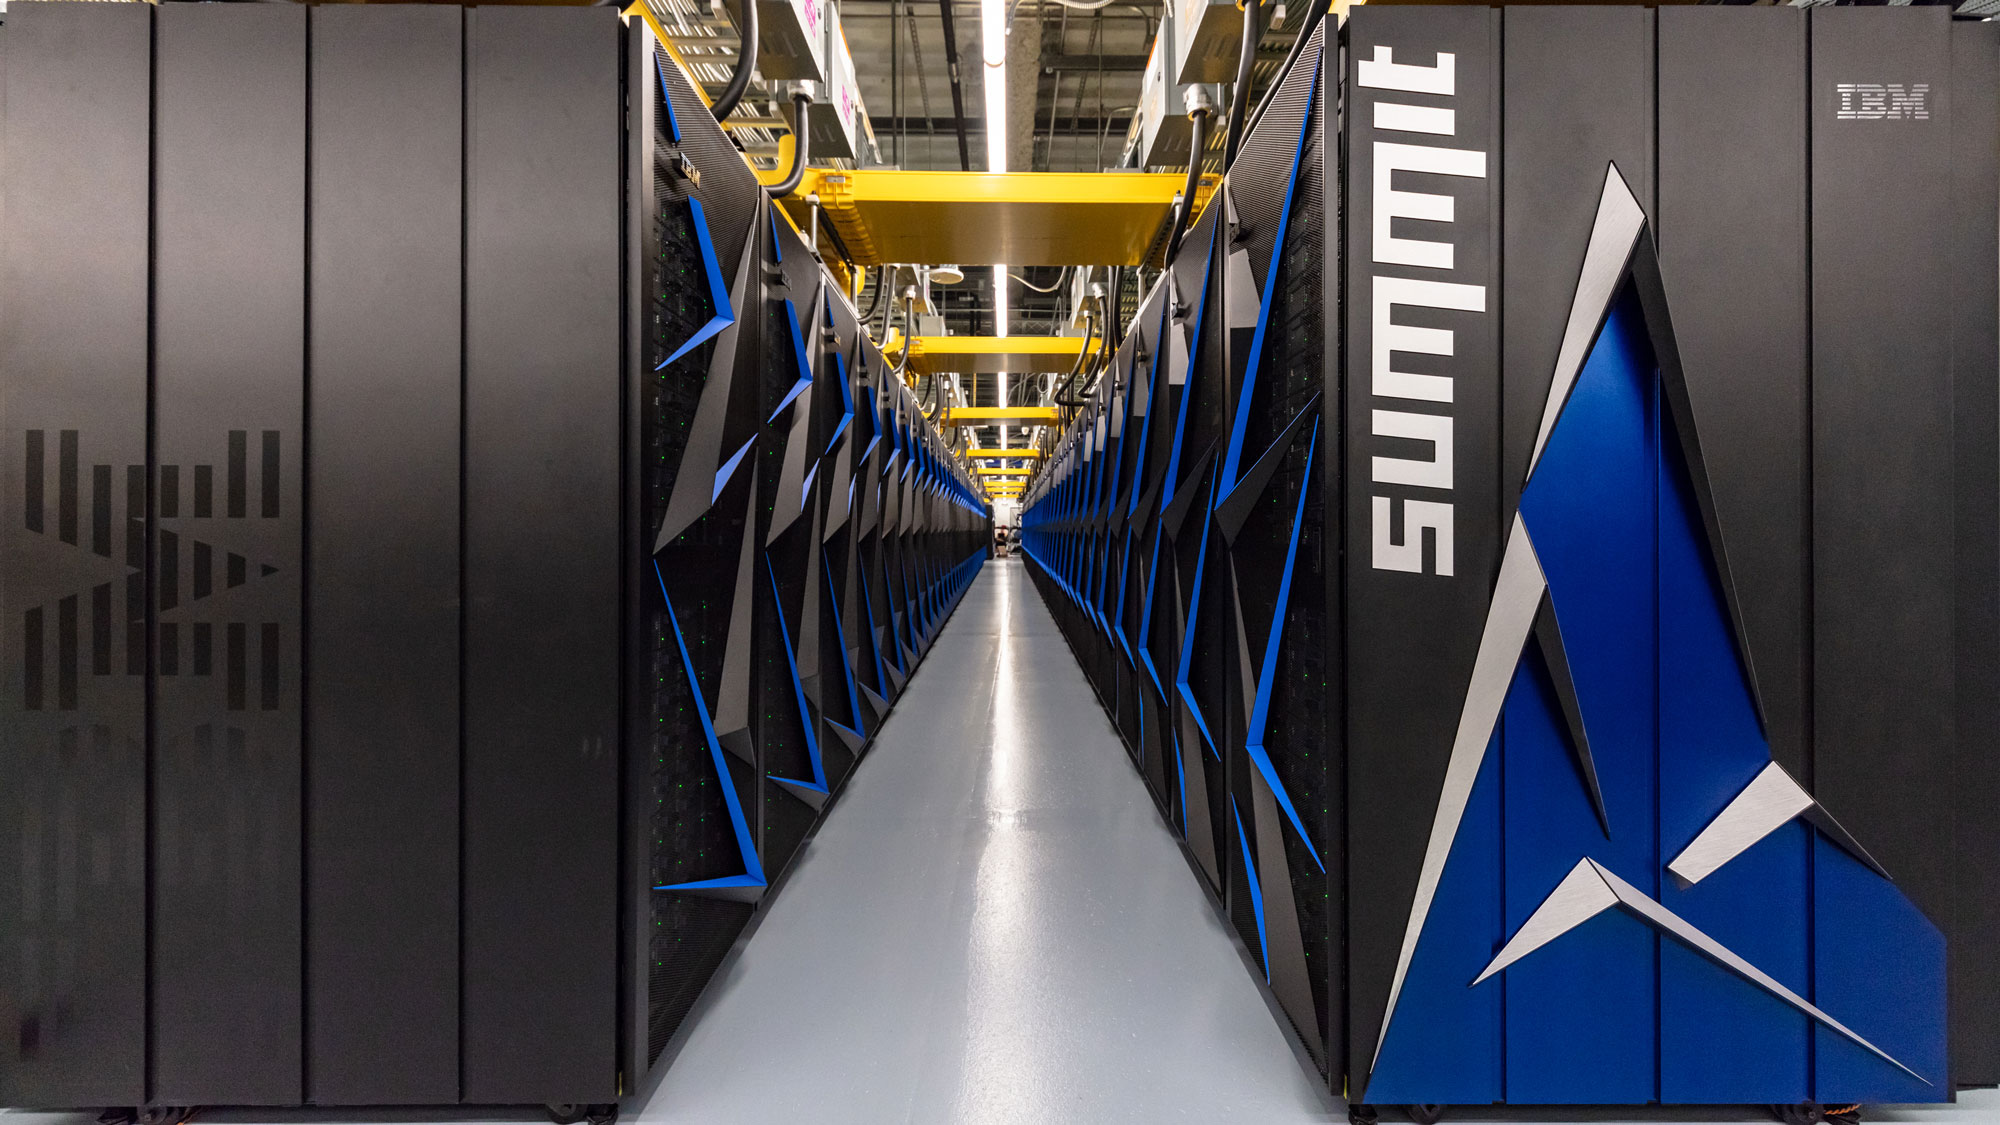 America Retakes The Title for World's Fastest Supercomputer